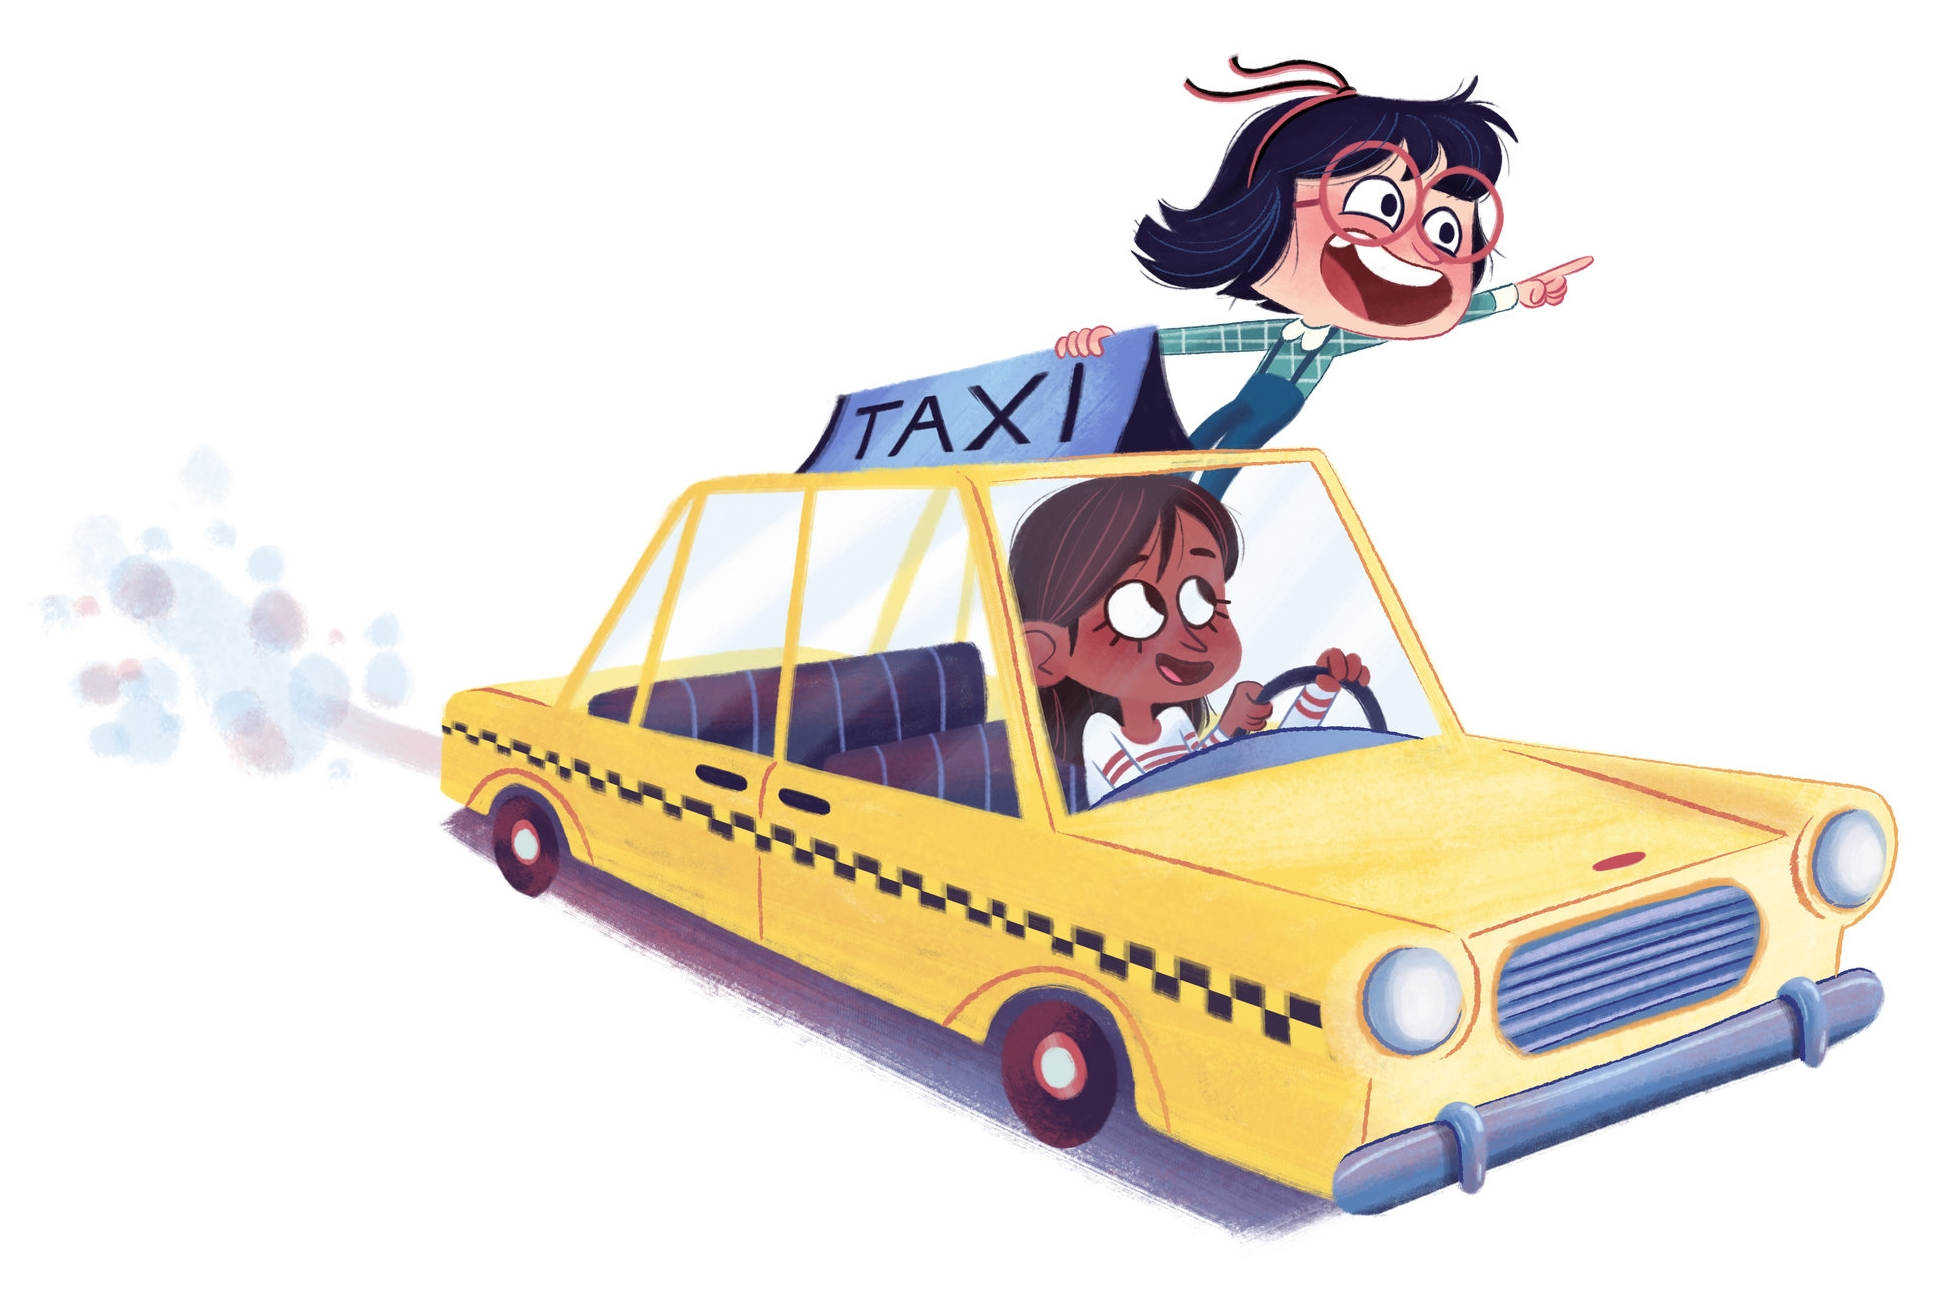 C_Taxi_To_Town_02.jpg